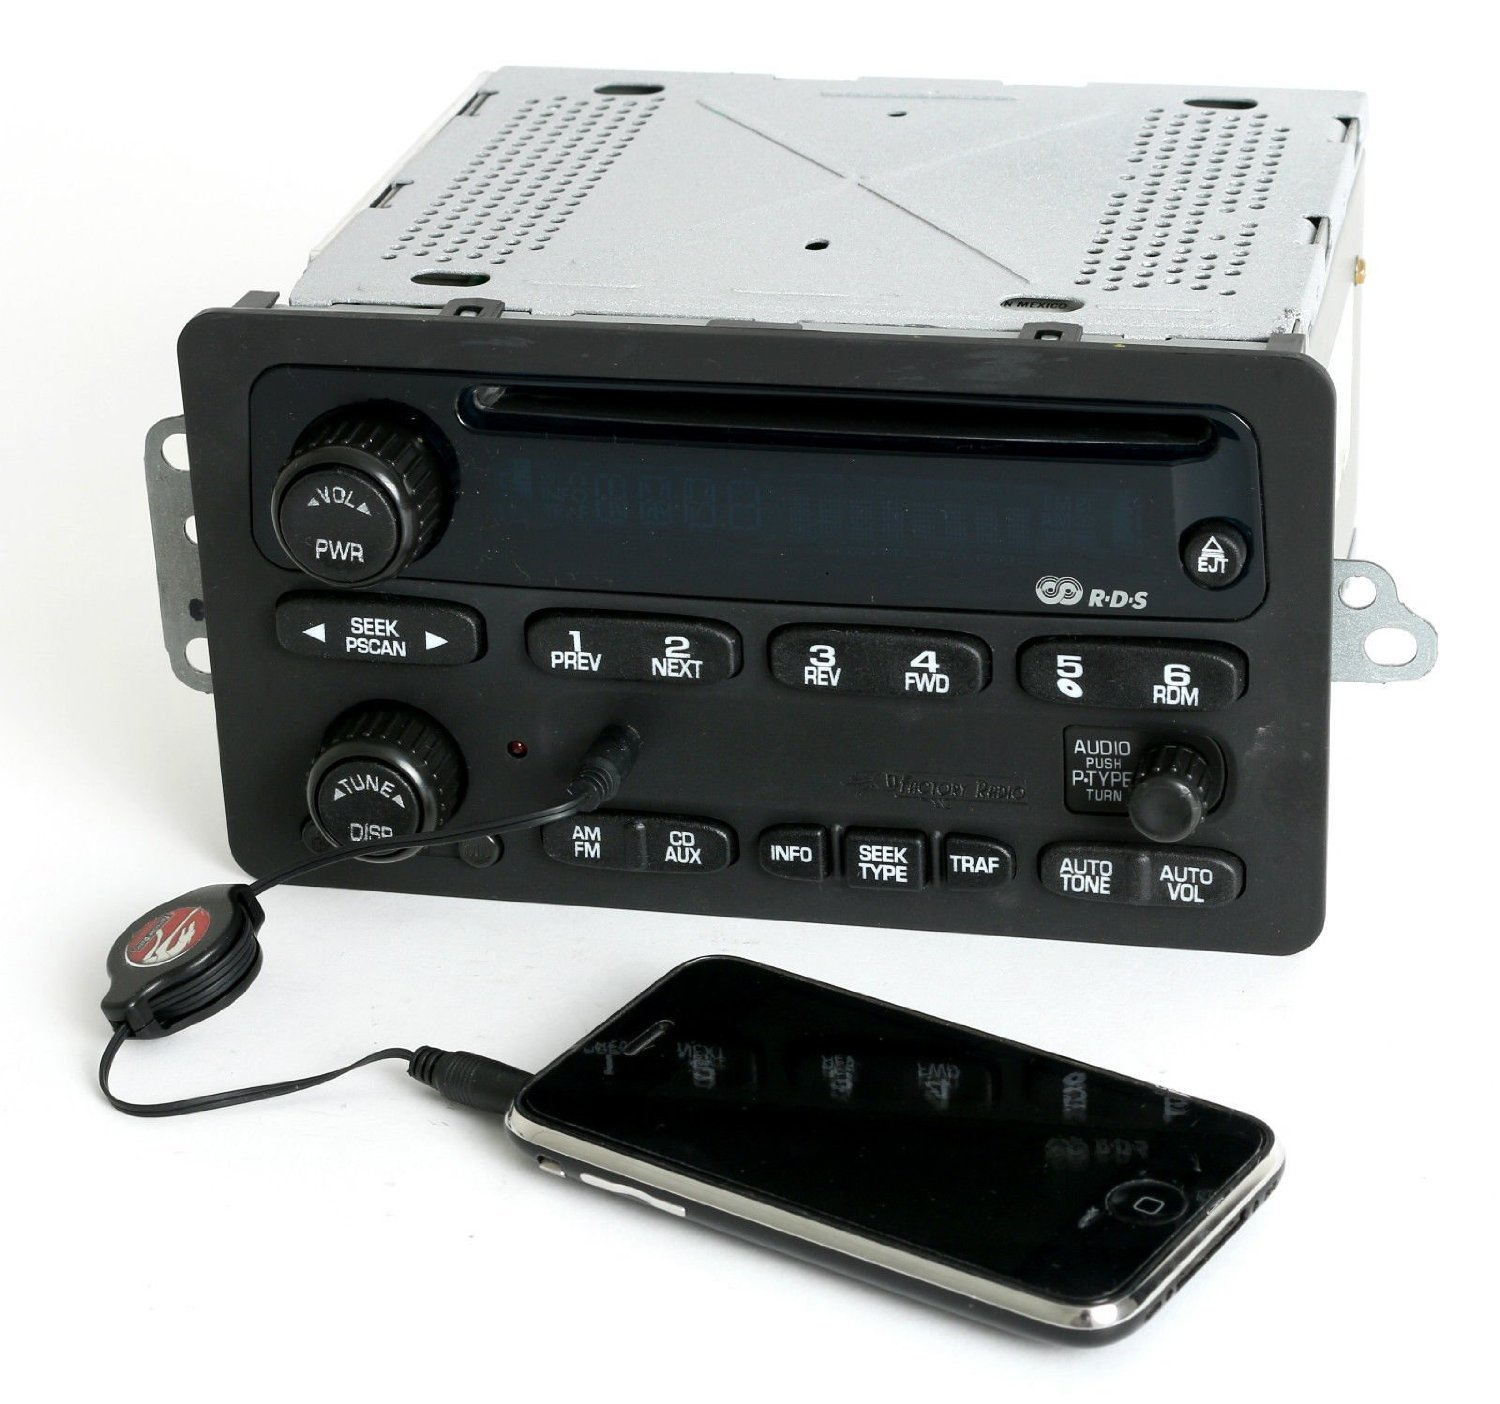 Chevy Car 2000-05 Radio AM FM CD w Aux Input - Refinished Face - RDS - 10335223